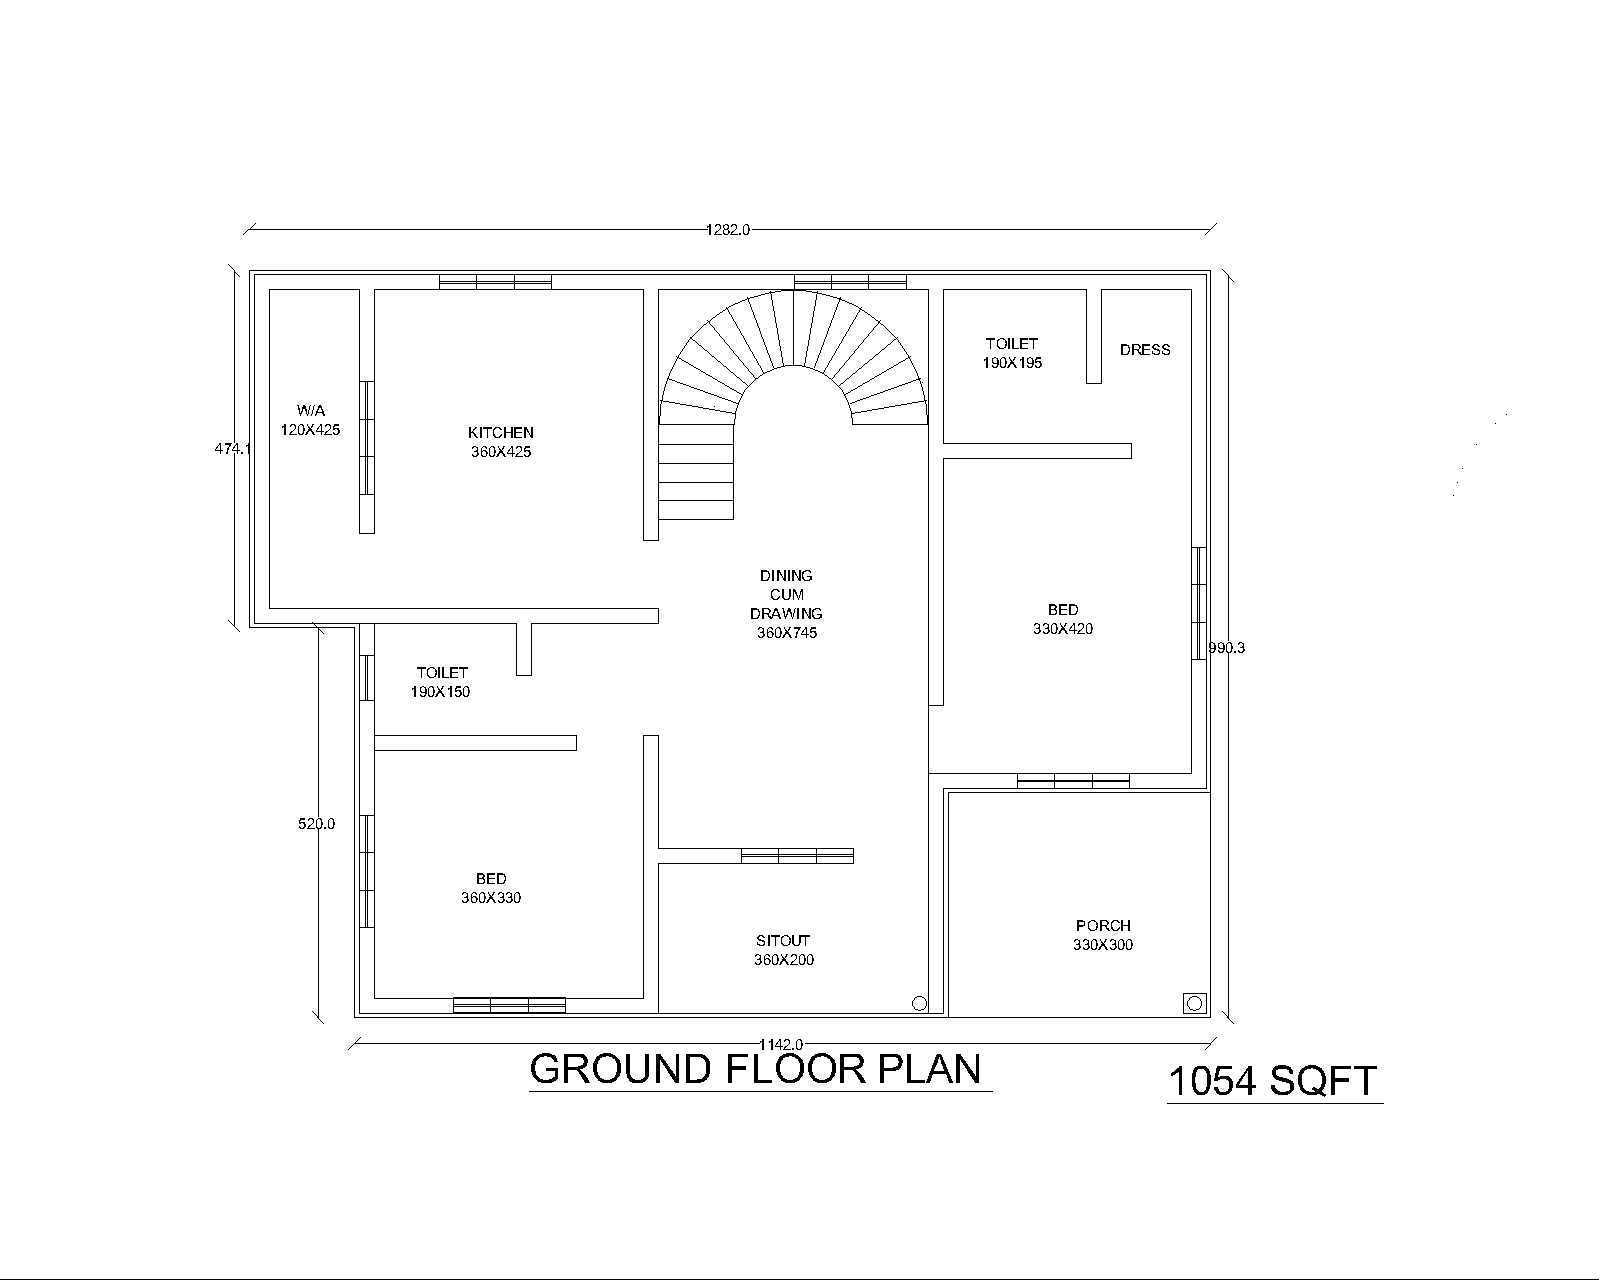 Uu27itu two bedroom house plans in kerala for 2 bedroom house plans in kerala